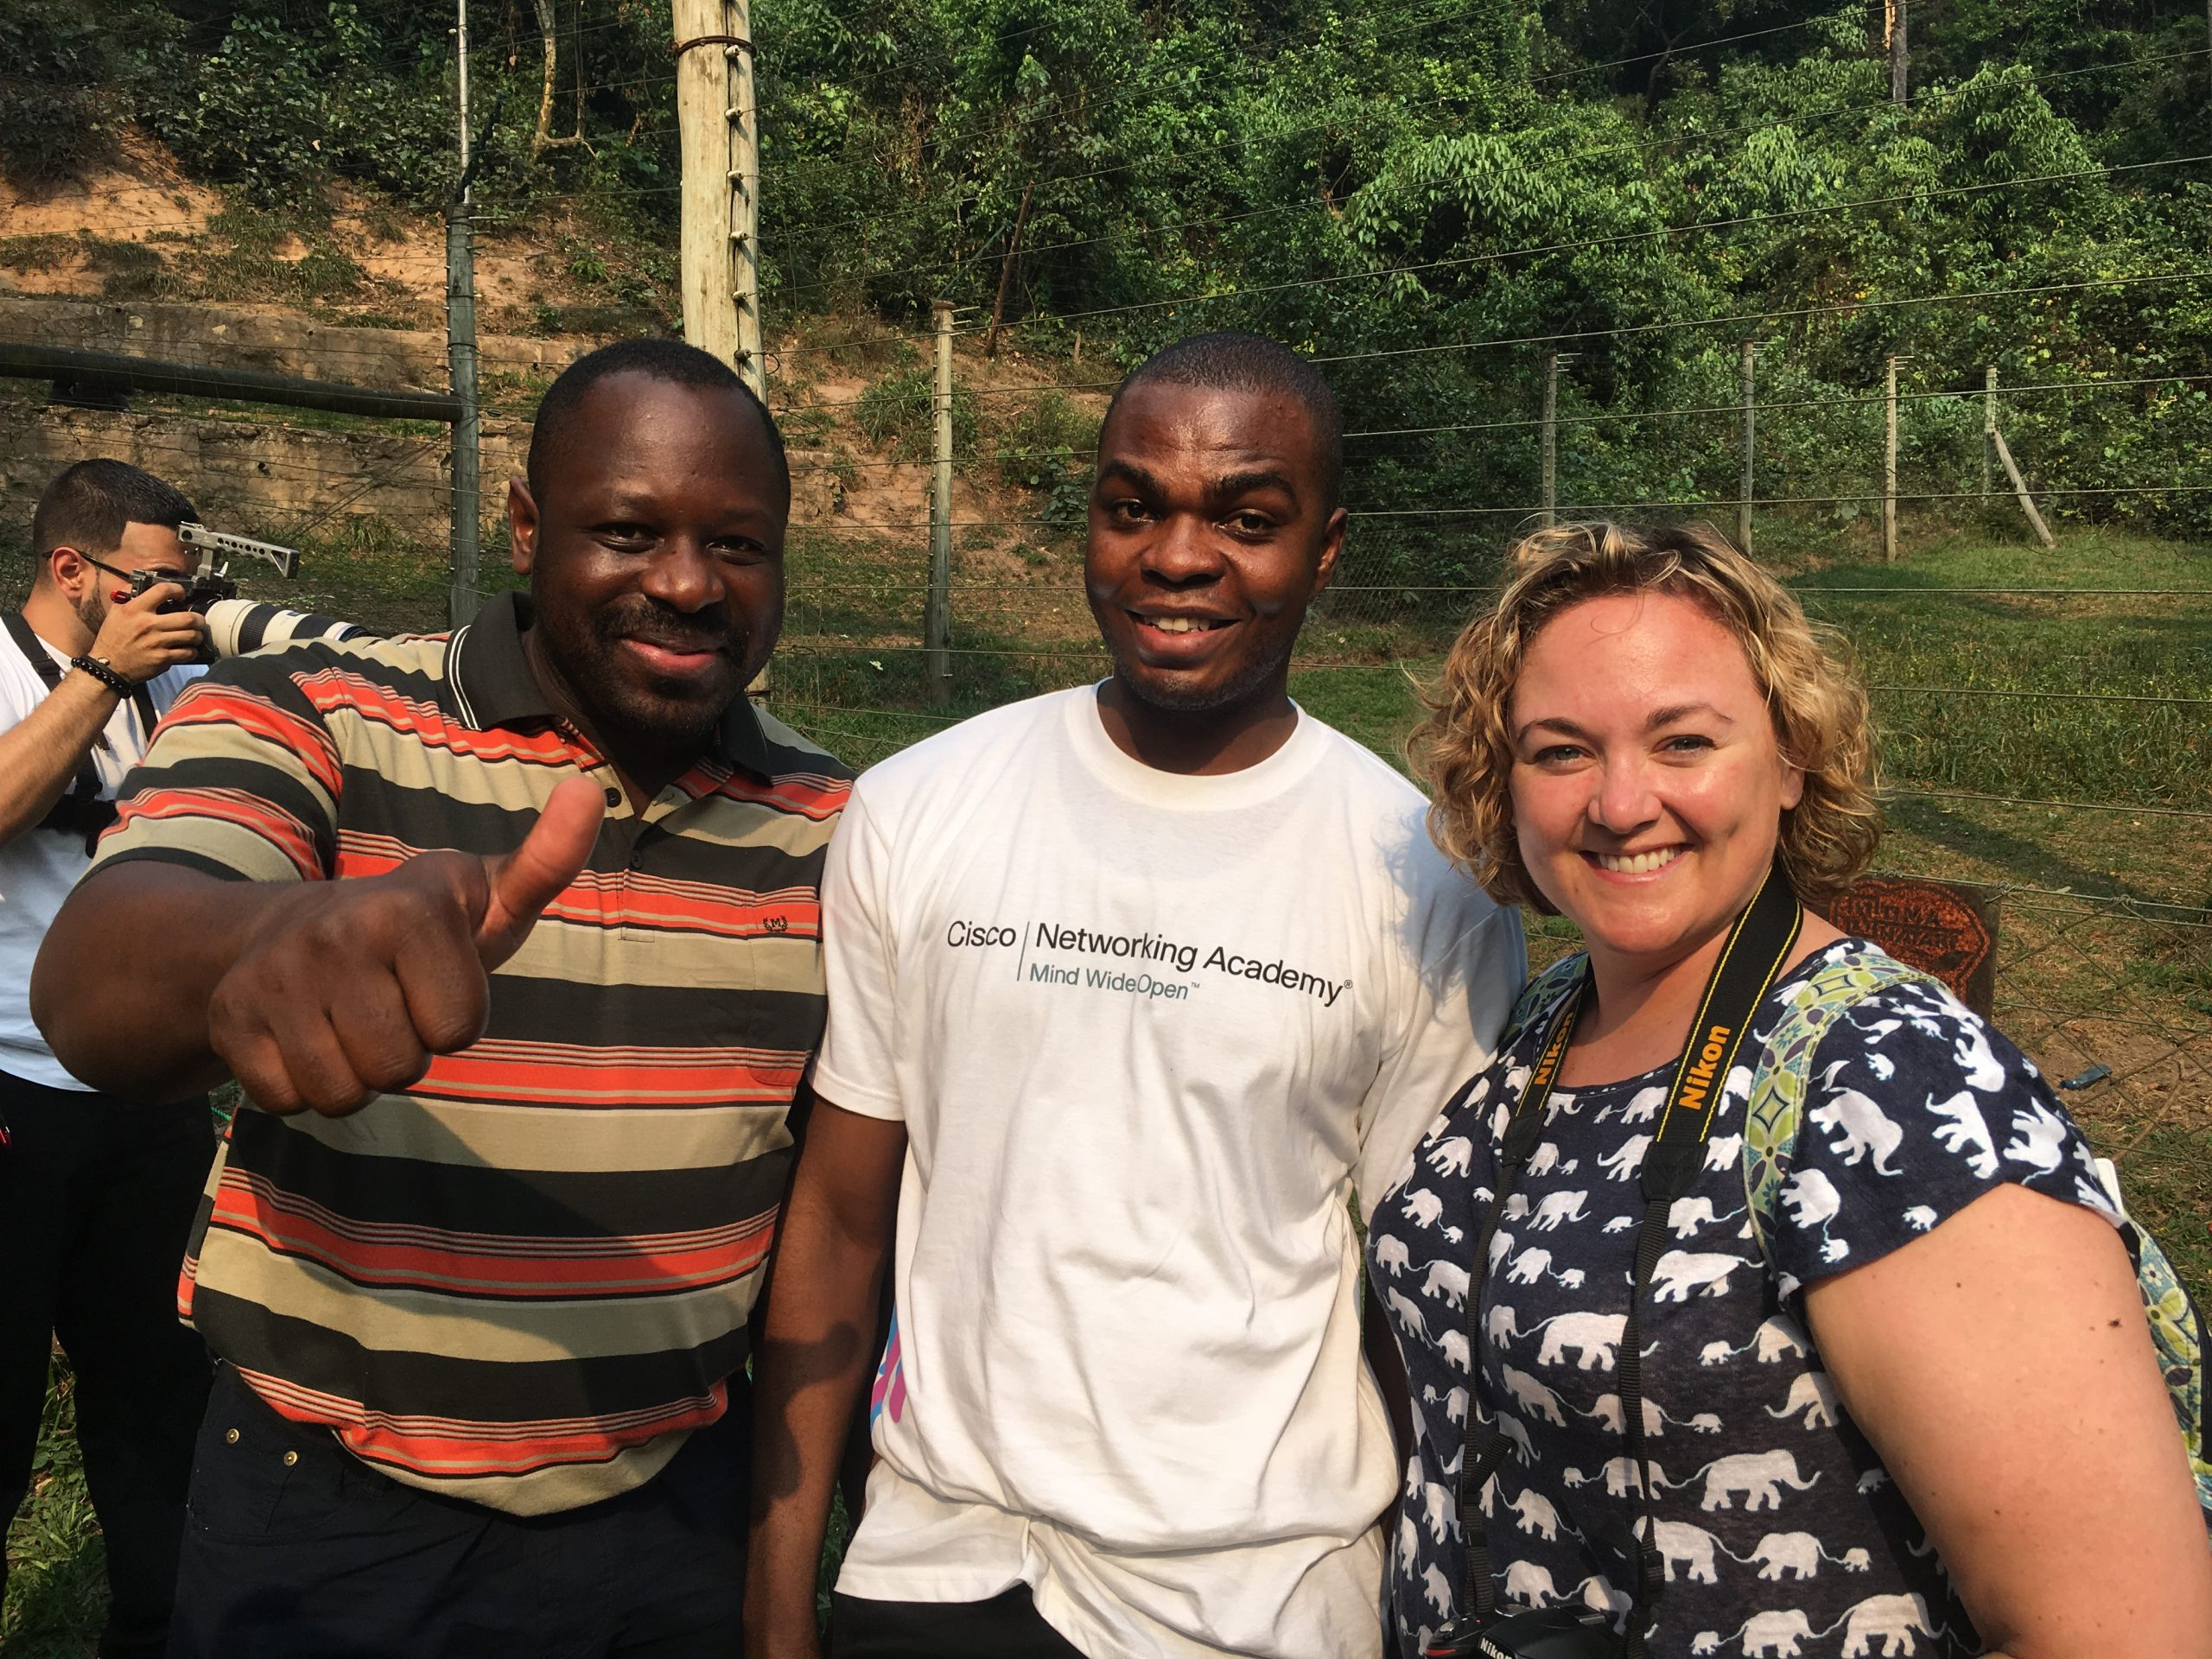 Shawn and her peer Calvain Nangue smiling with one of the Network Academy students in the Congo.